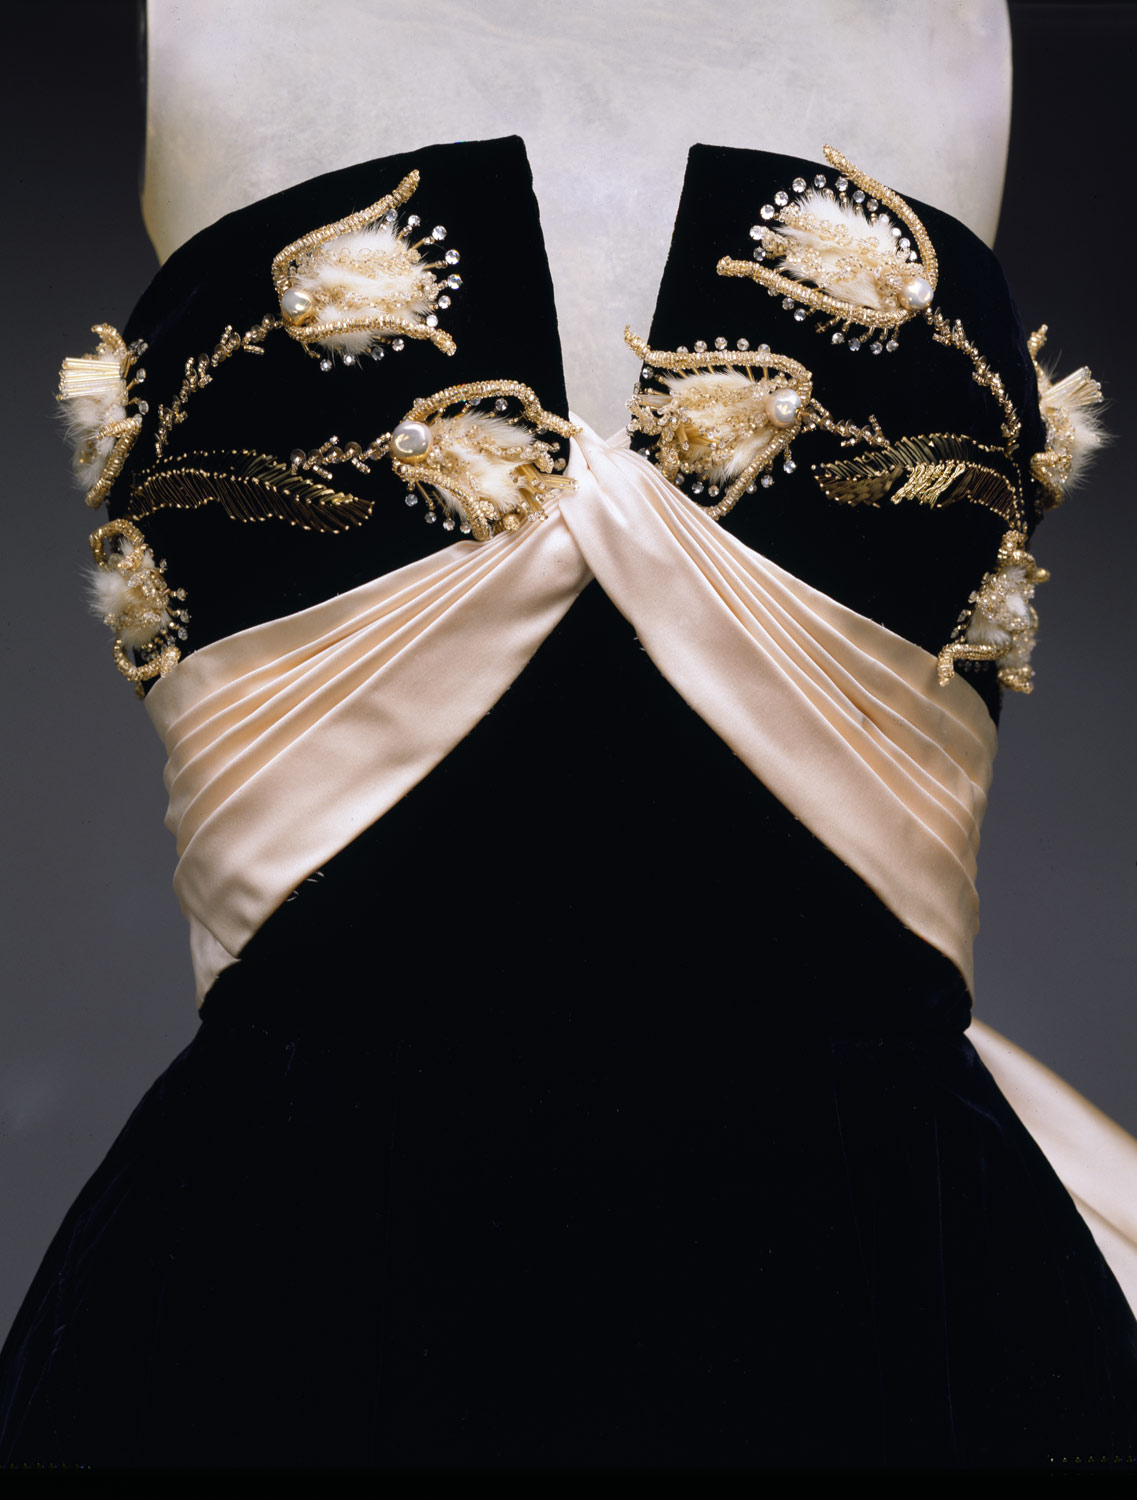 Ball gown | House of Jacques Fath, Jacques Fath | 1984.606.3a,b ...